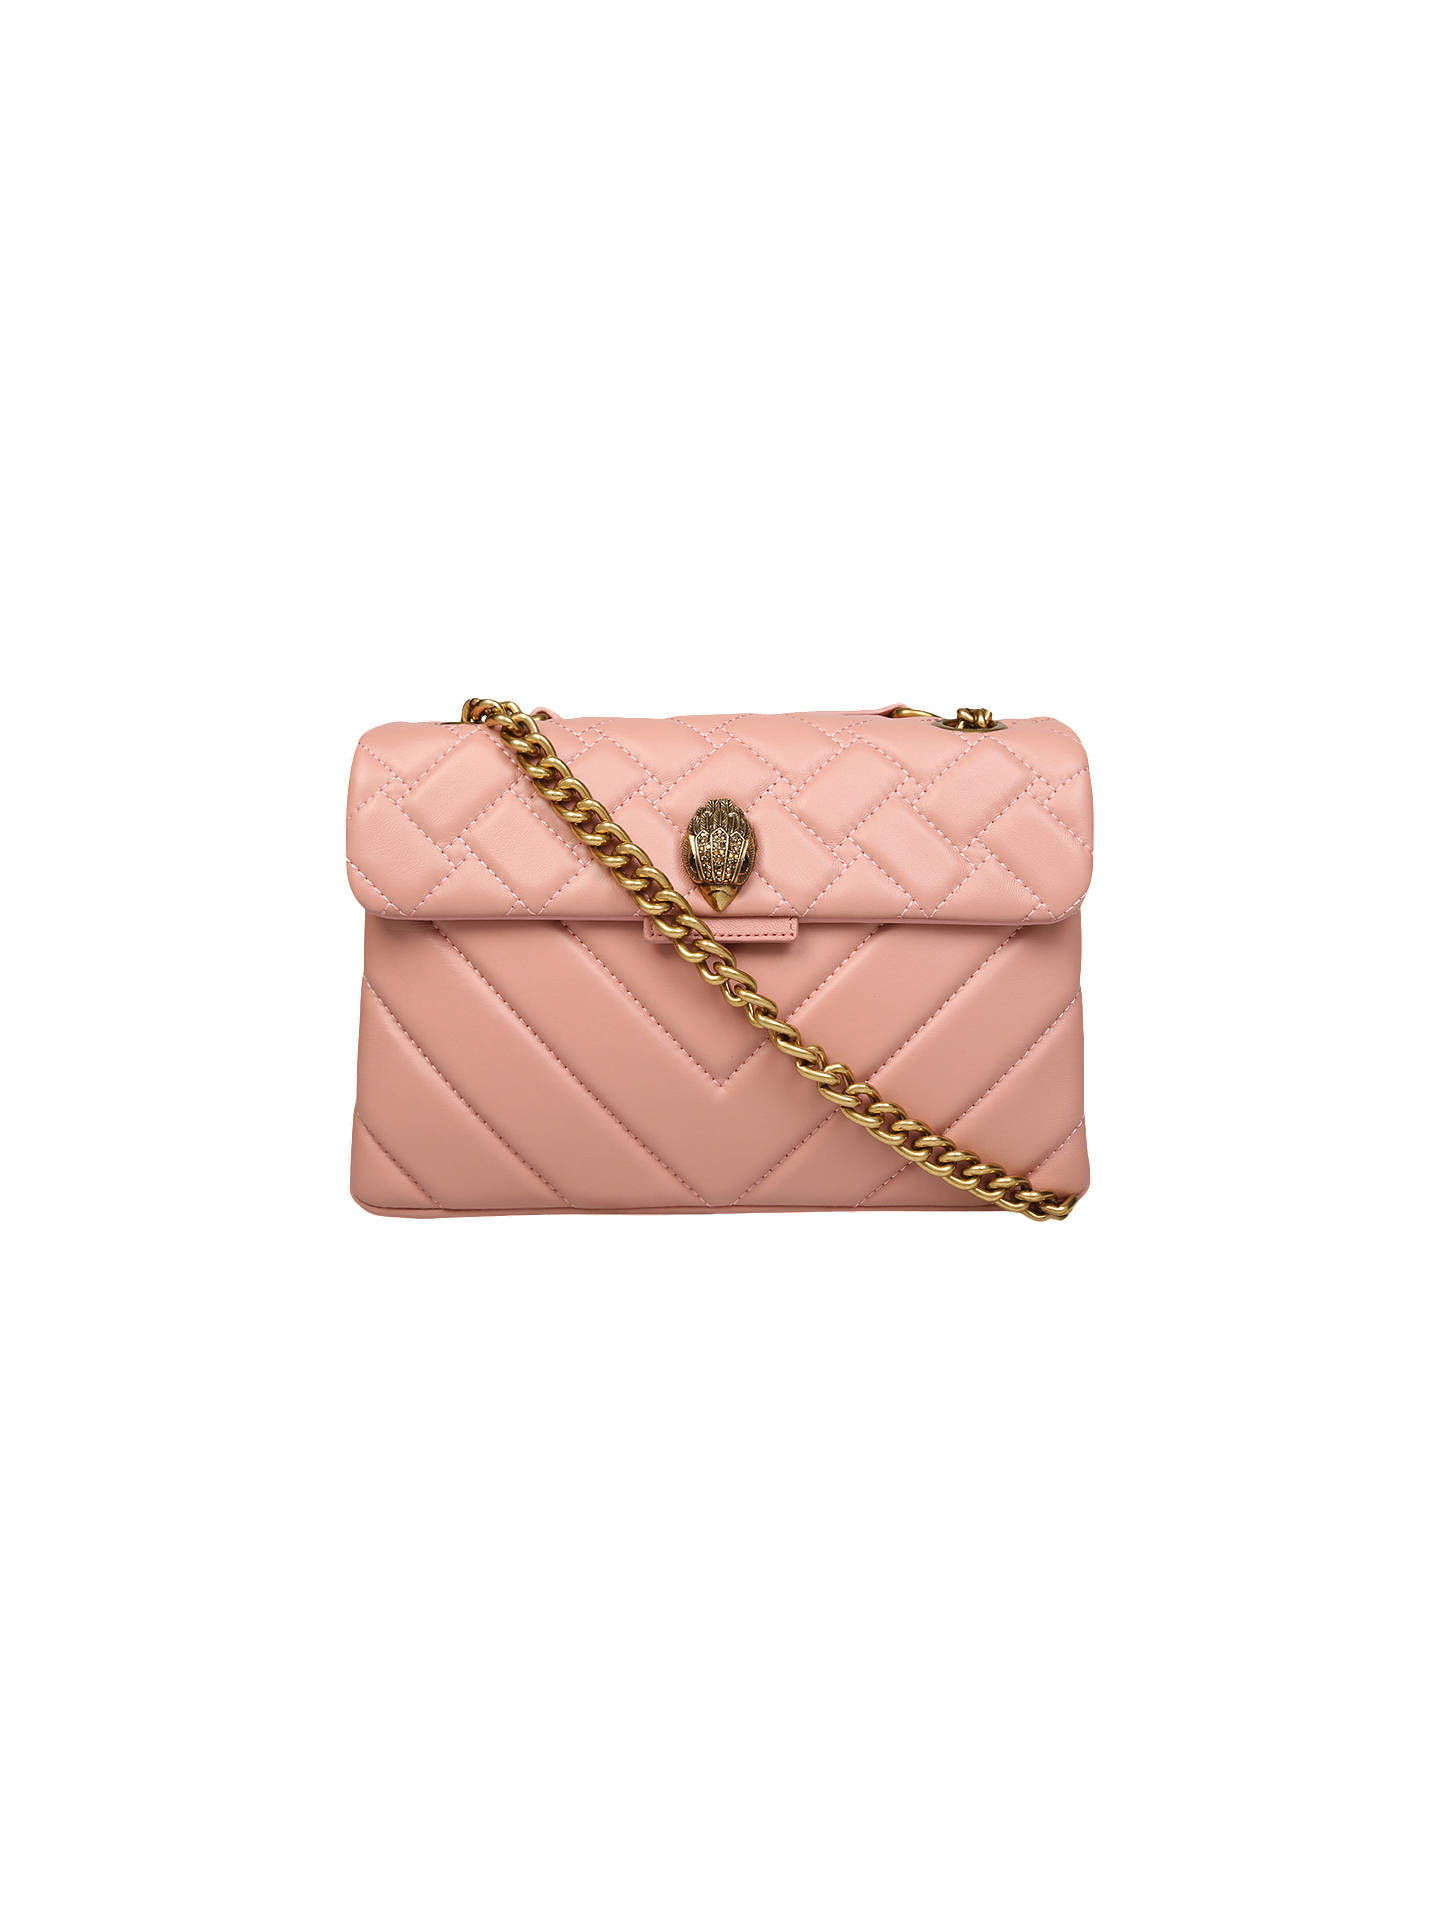 06e241d32912 Buy Kurt Geiger London Mini Kensington Leather Cross Body Bag, Pink Online  at johnlewis.